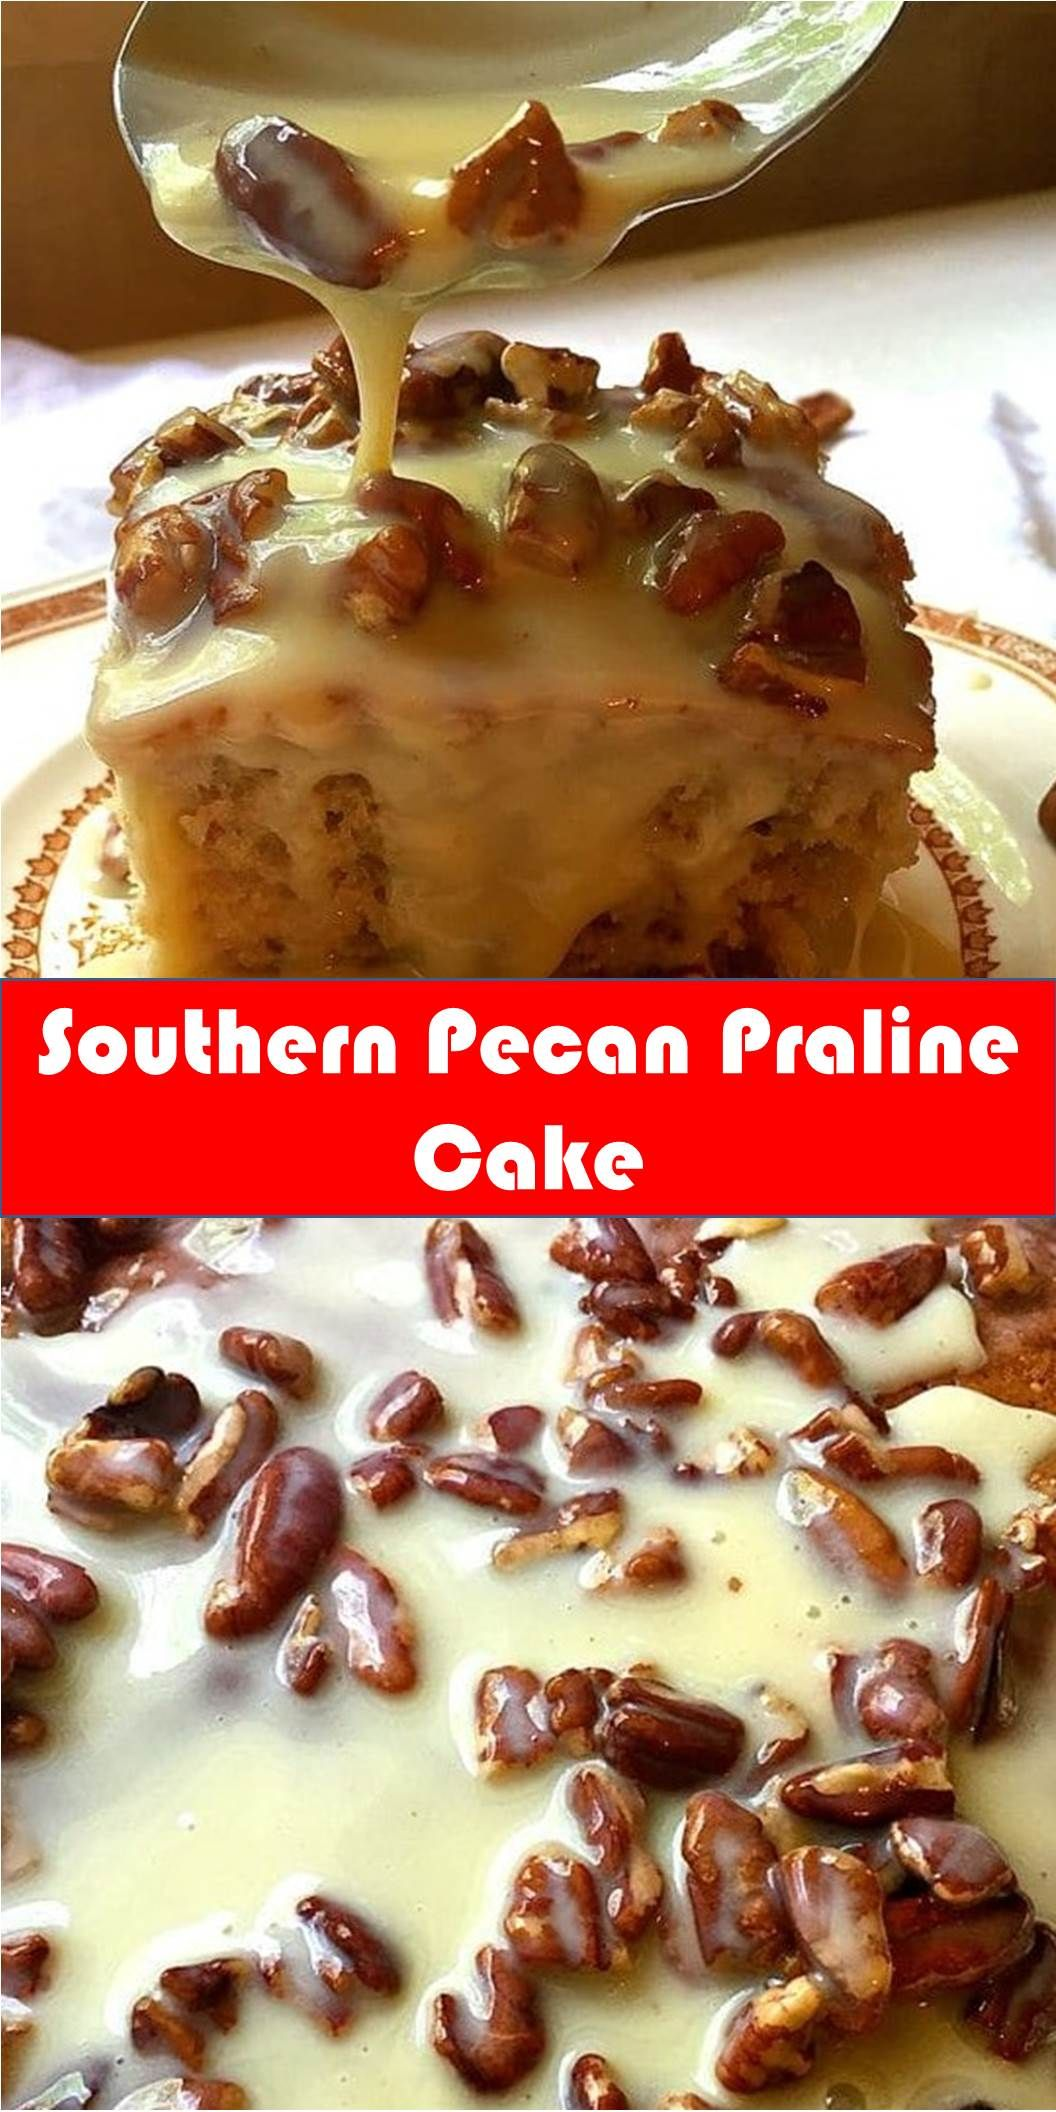 #Delicious #Southern #Pecan #Praline #Cake Your family's favorite food and drink ! Southern Pecan Praline Cake Southern Pecan Praline Cake is about as southern as you can get and if you like pecans and pralines you will love this easy to make, decadent and delicious cake. #Best #Vegas #Recipe! #BestVegasRecipe! #pralinecake